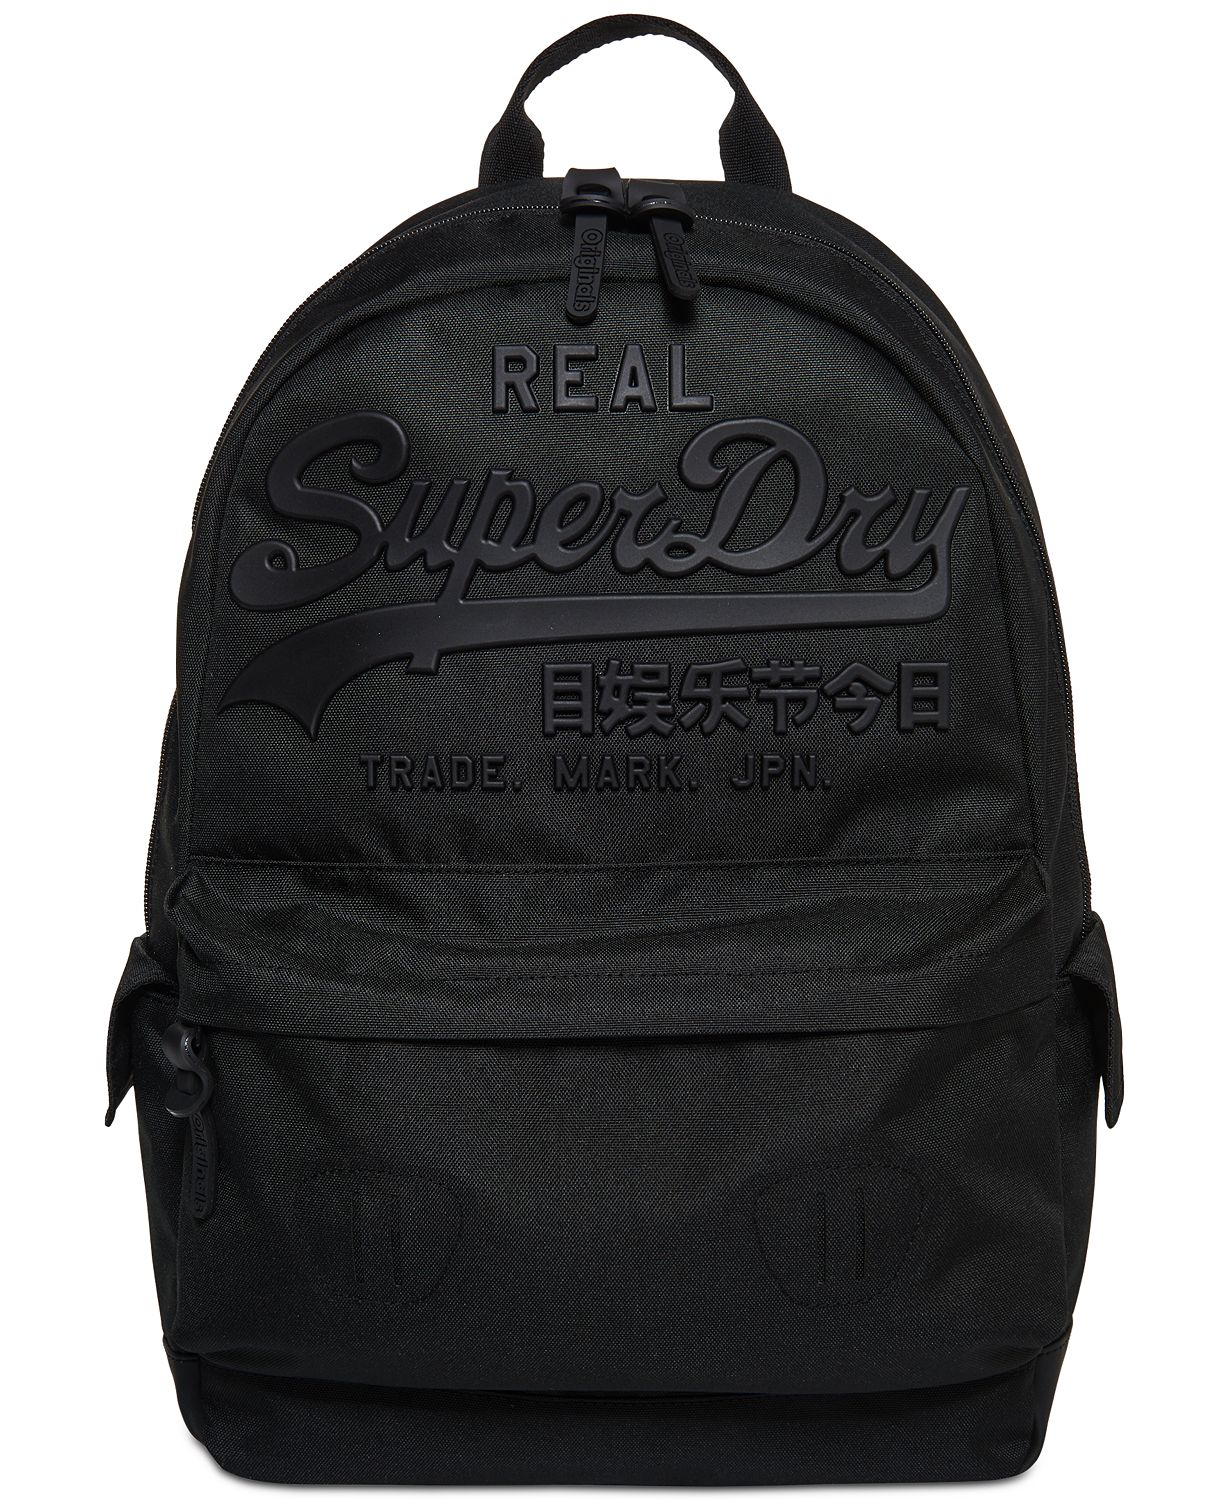 8b37a301ffd7 Superdry Backpack - BigGo Price Search Engine